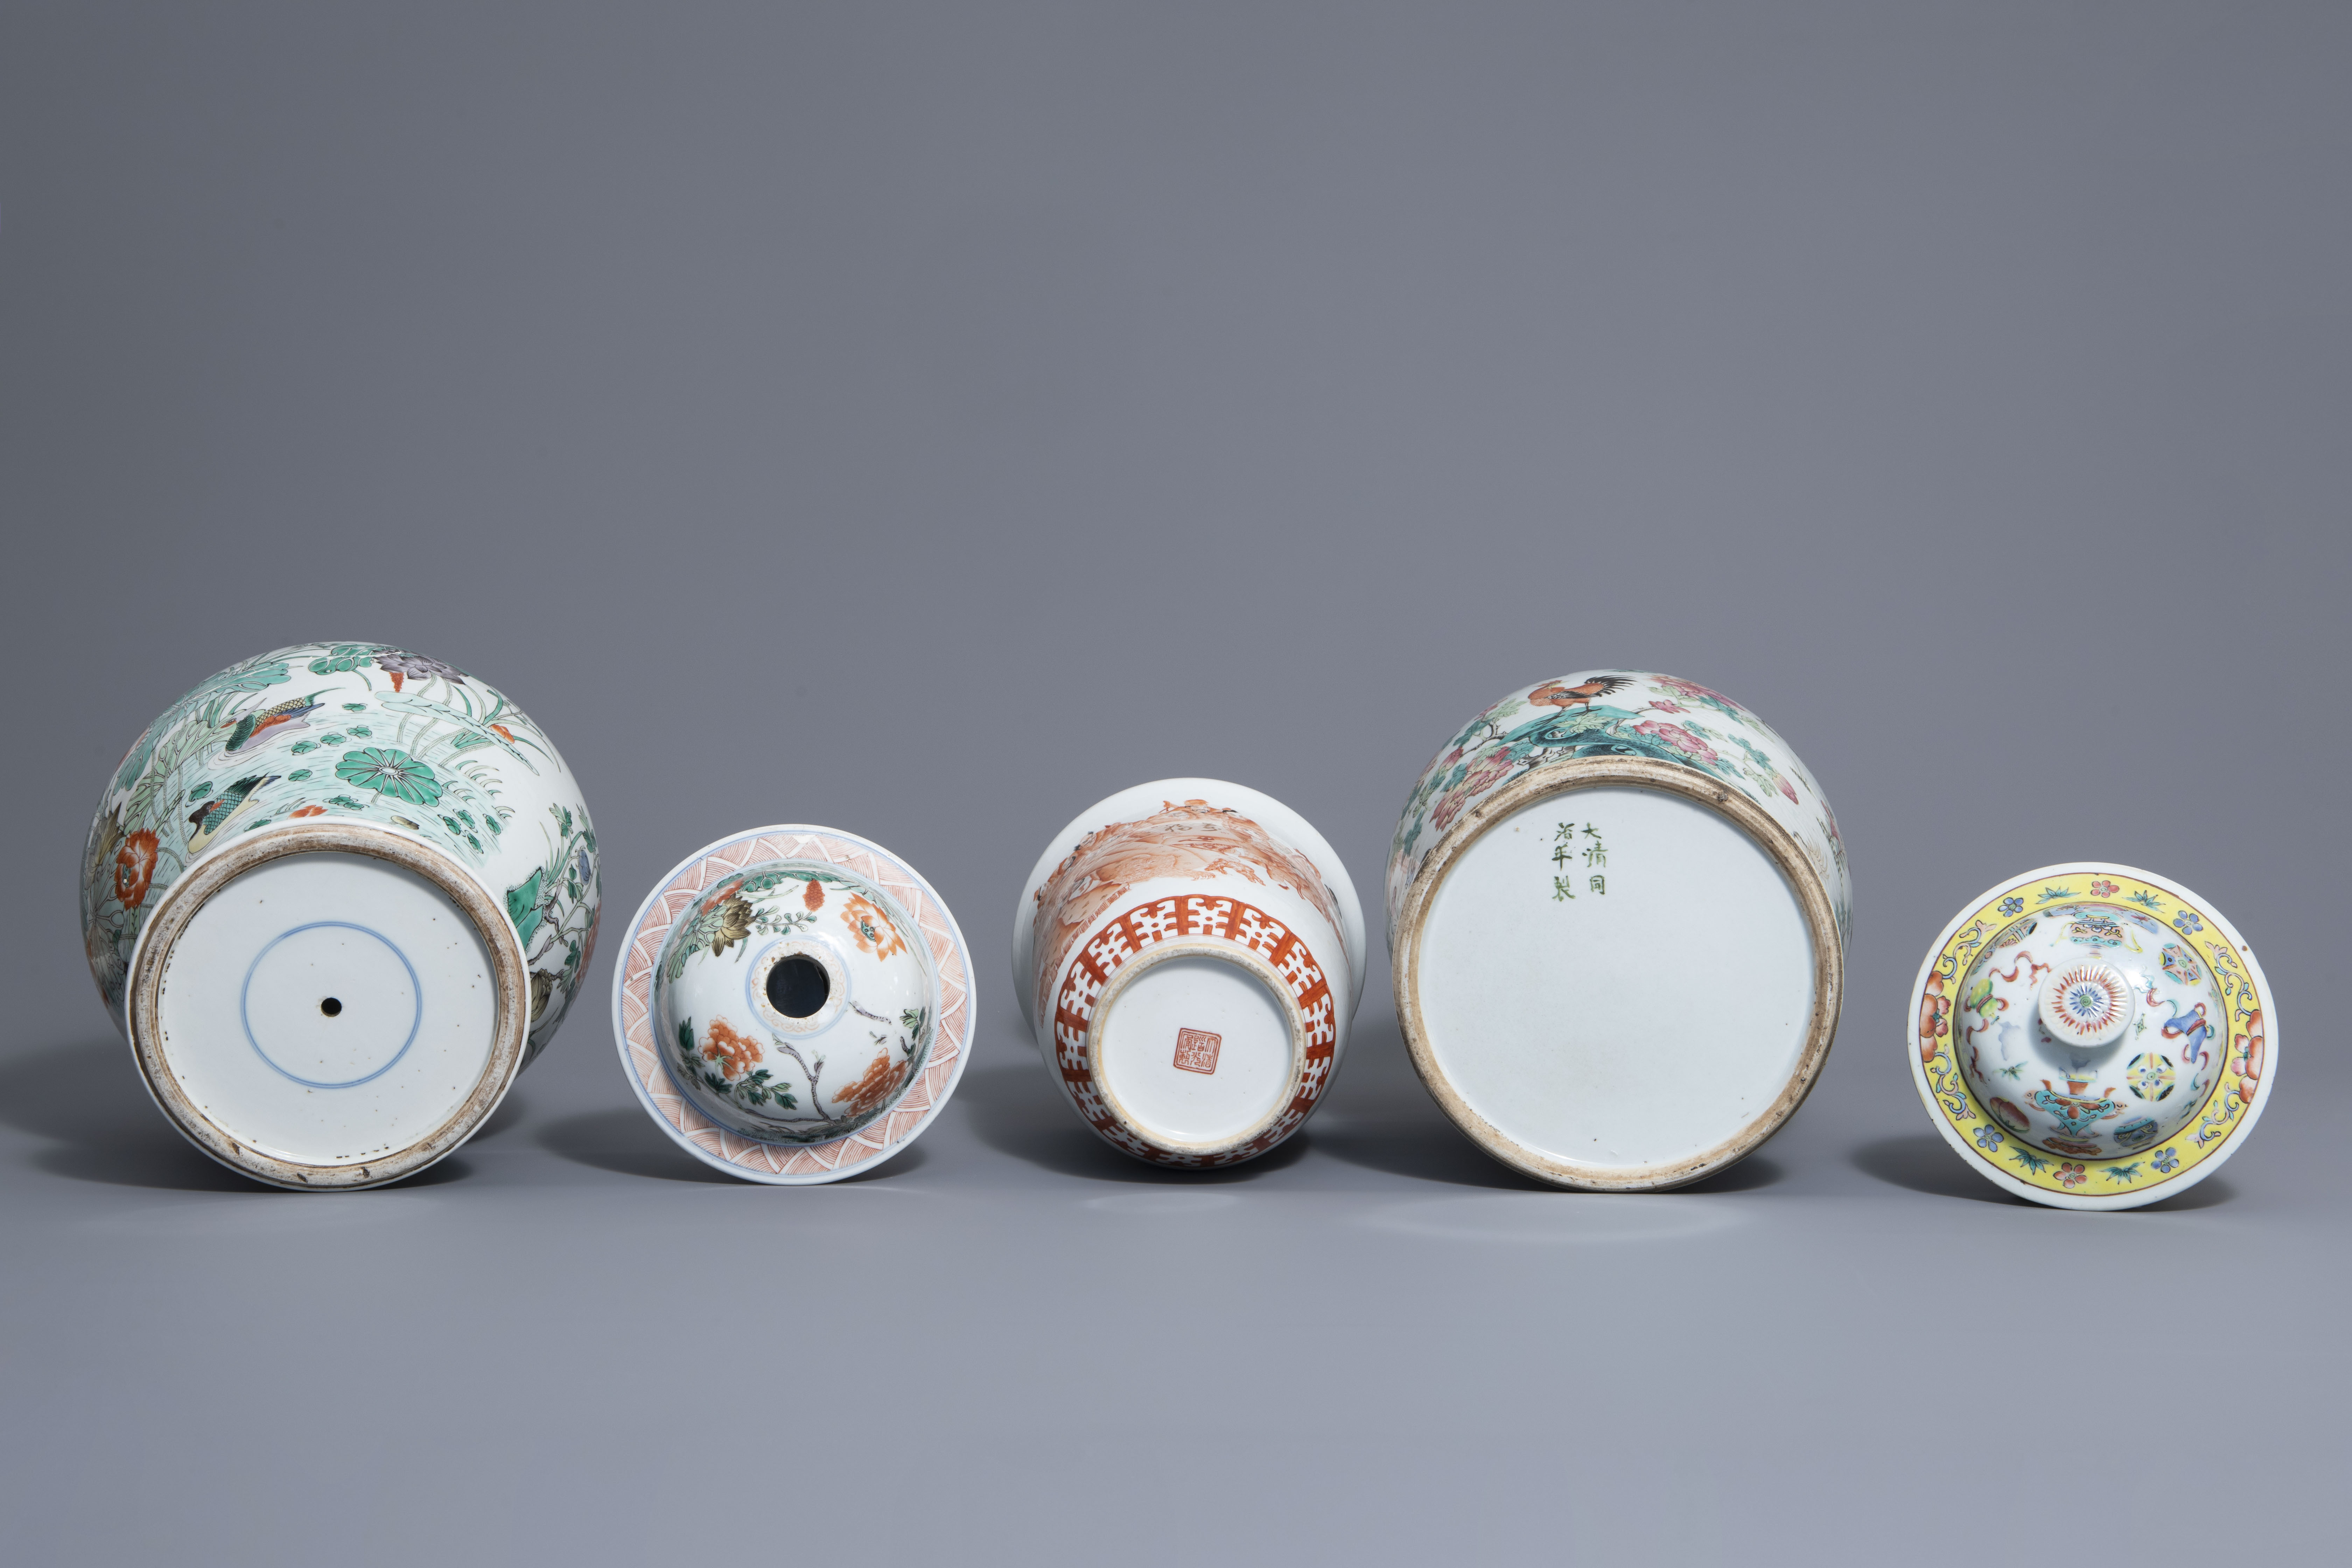 Three Chinese famille rose, verte and iron red vases with different designs, 19th/20th C. - Image 7 of 7